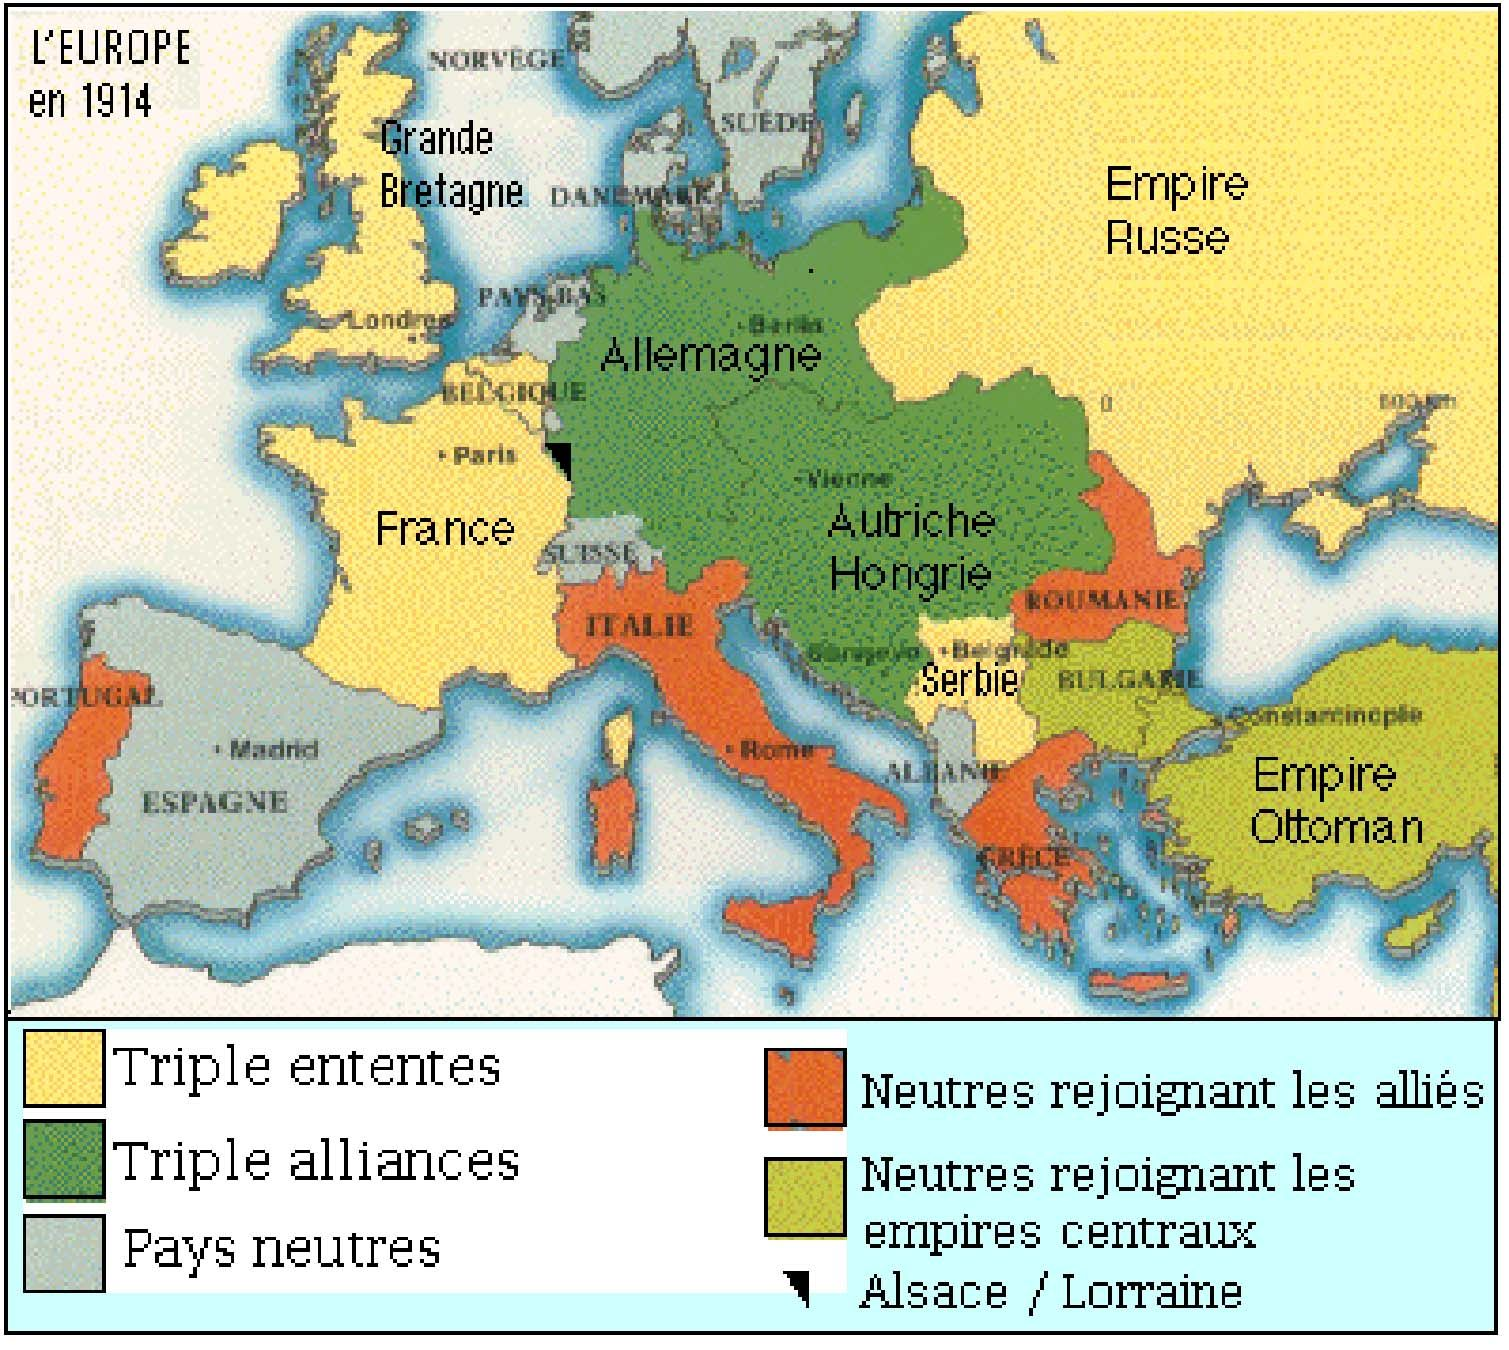 This is a map of europe in 1914 that illistrates the allied forces and the ce